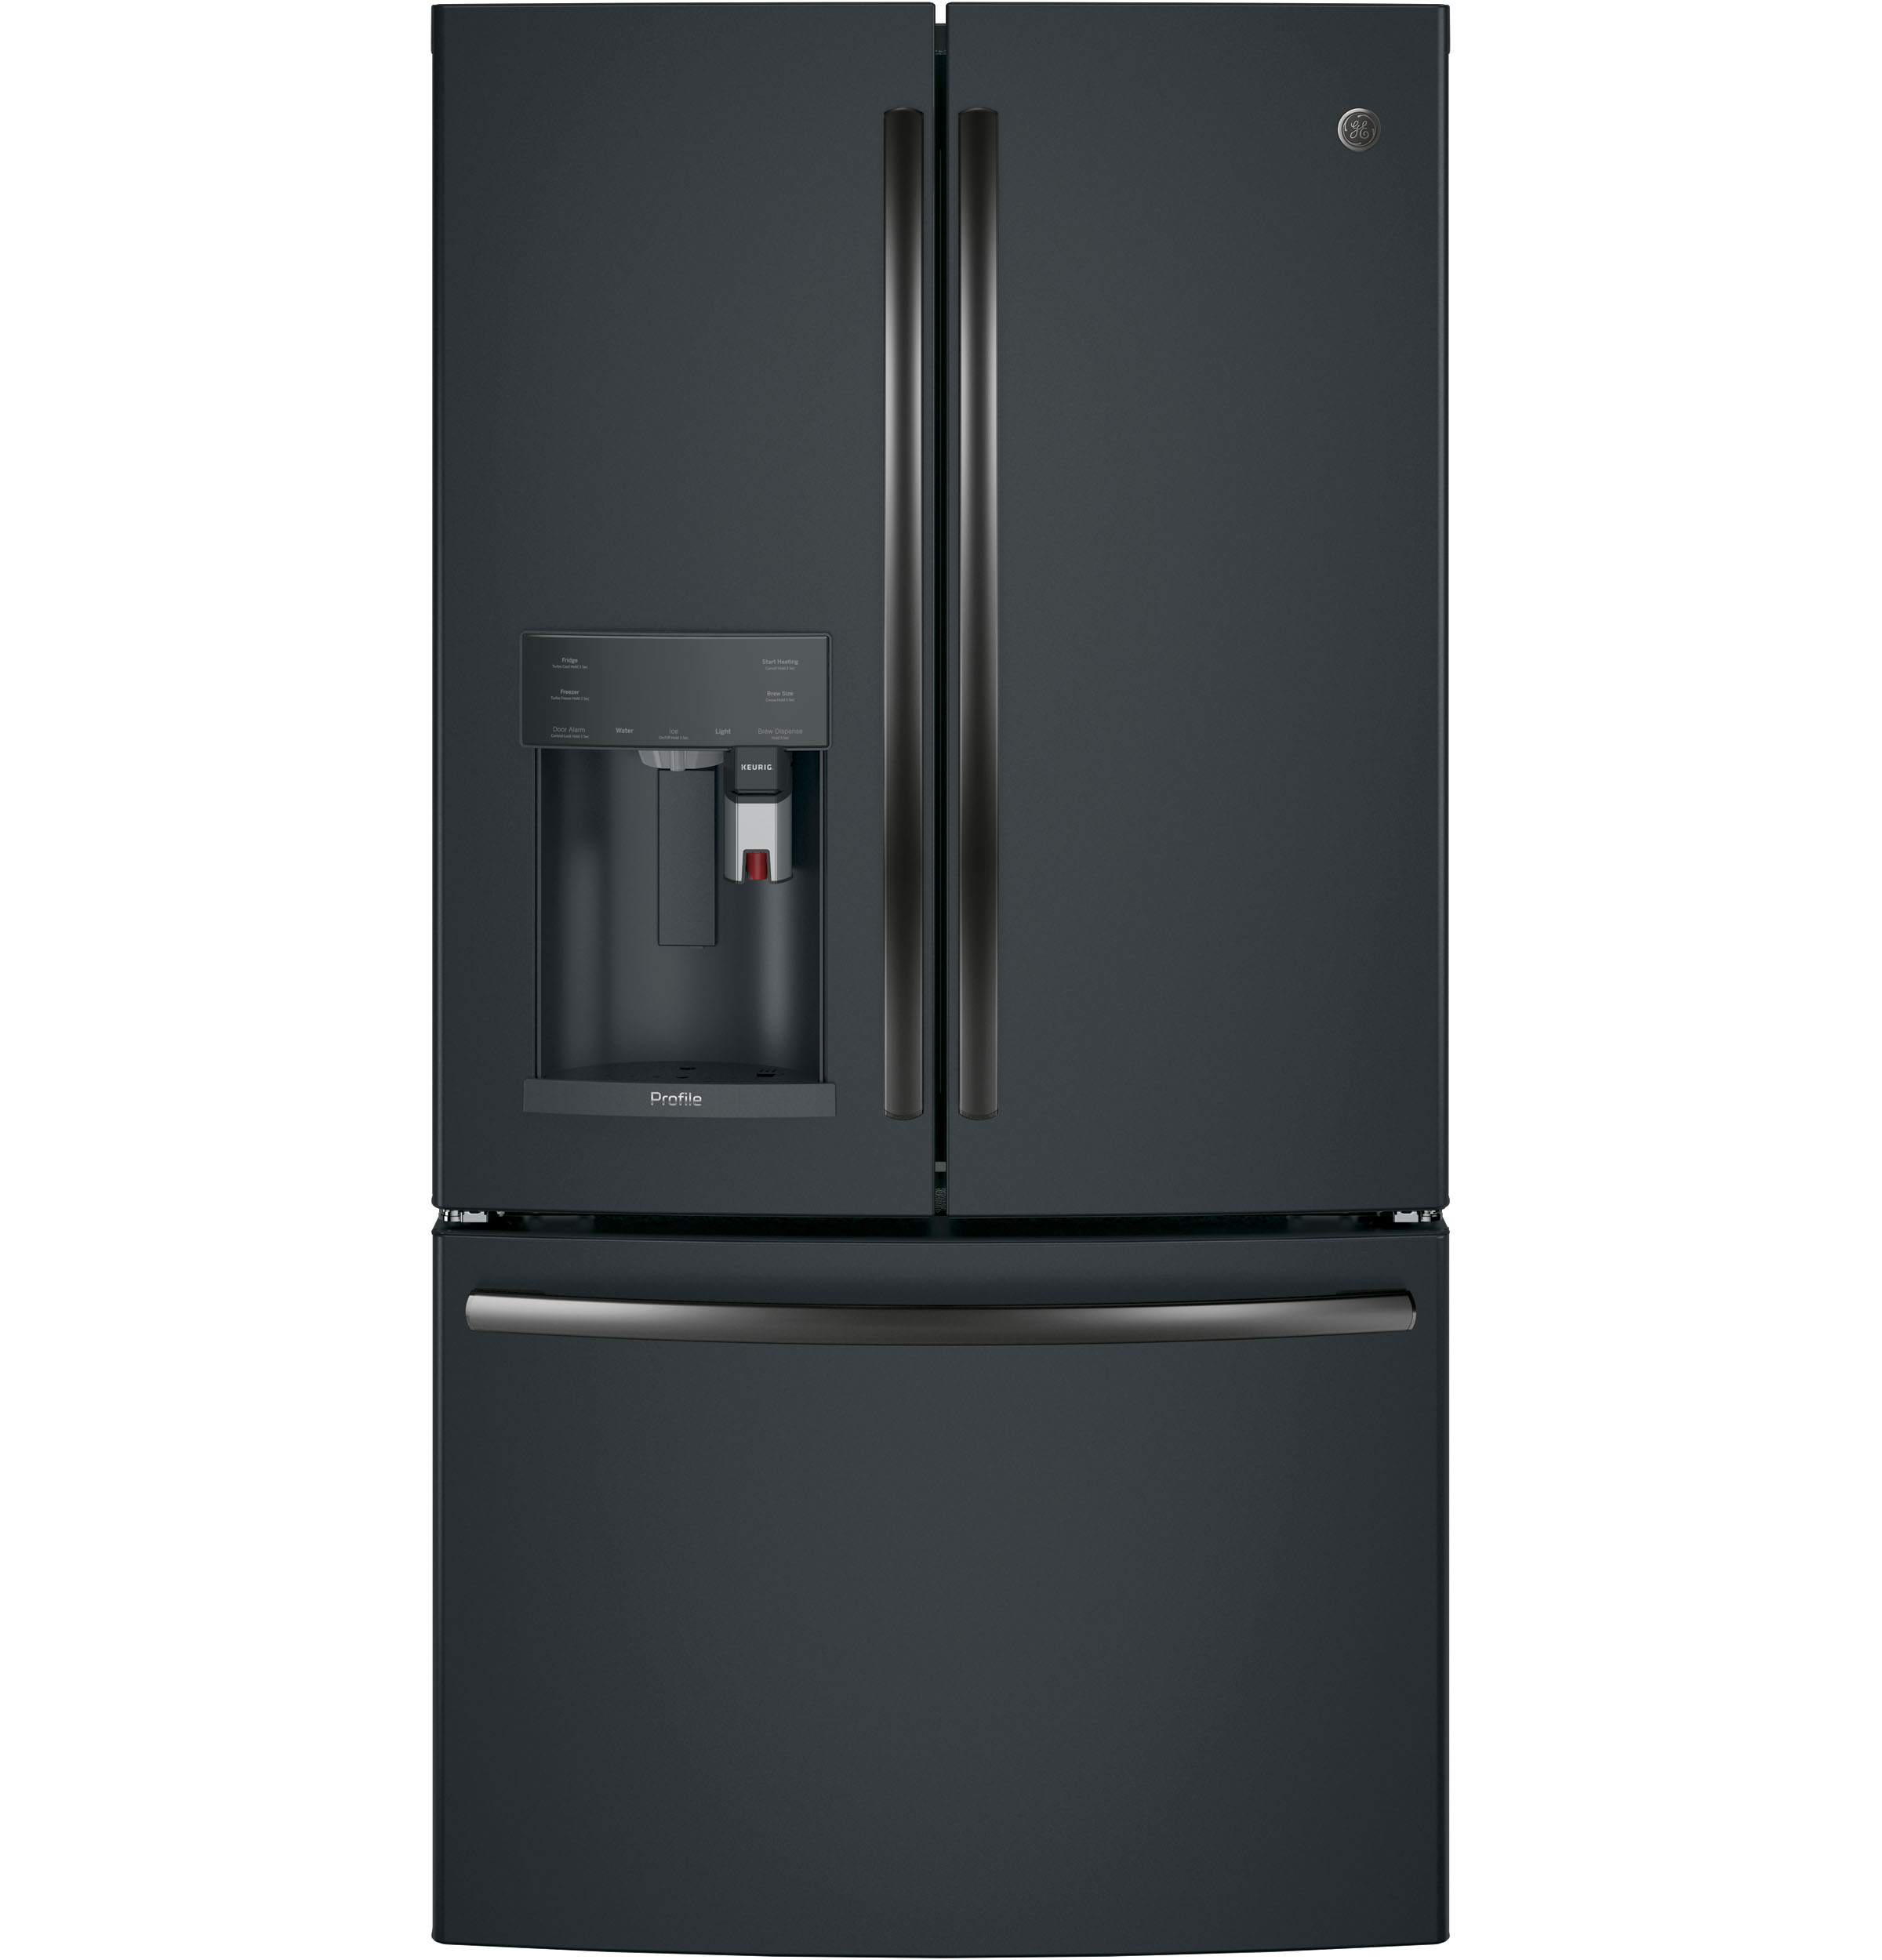 GE Profile GE Profile™ Series ENERGY STAR® 22.2 Cu. Ft. Counter-Depth French-Door Refrigerator with Keurig® K-C